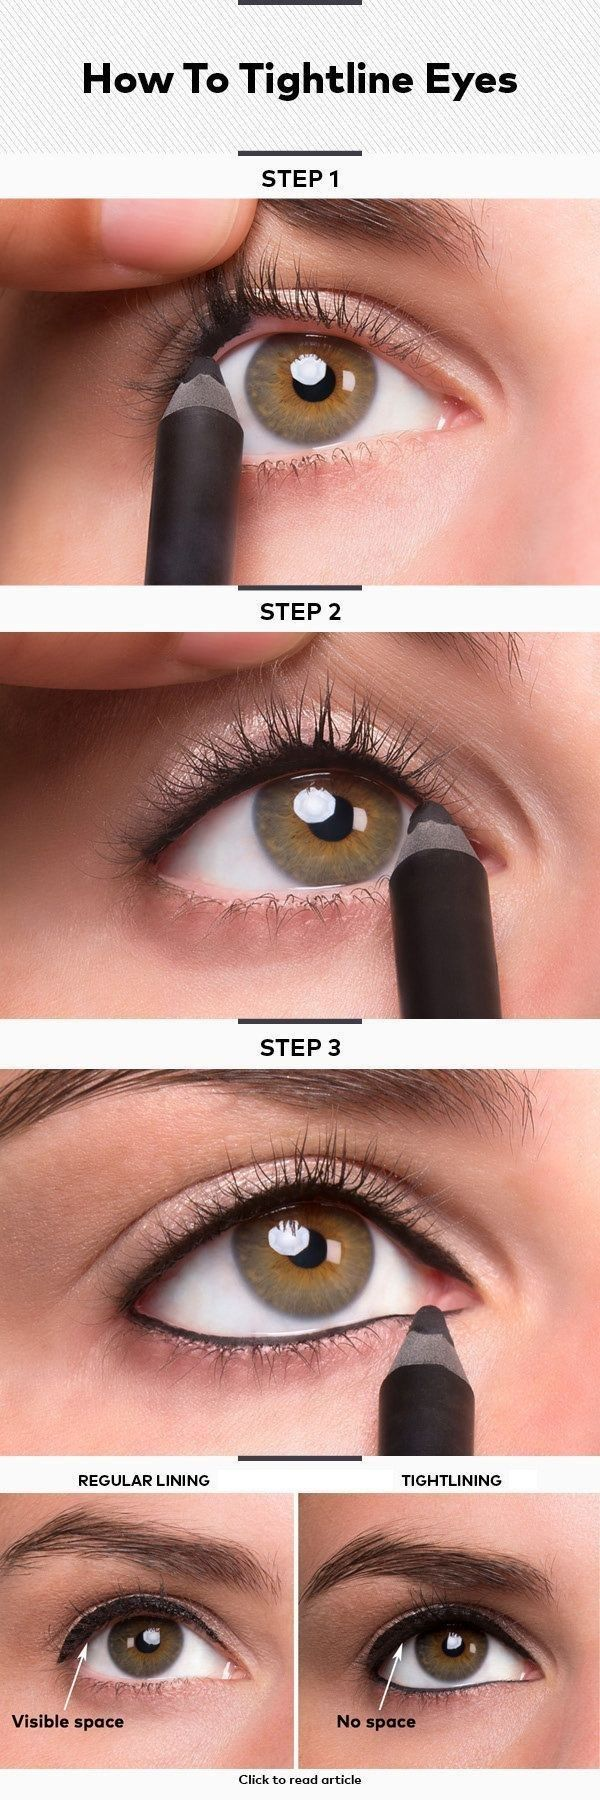 15%20Game-Changing%20Eyeliner%20Charts%20If%20You%20Suck%20At%20Makeup